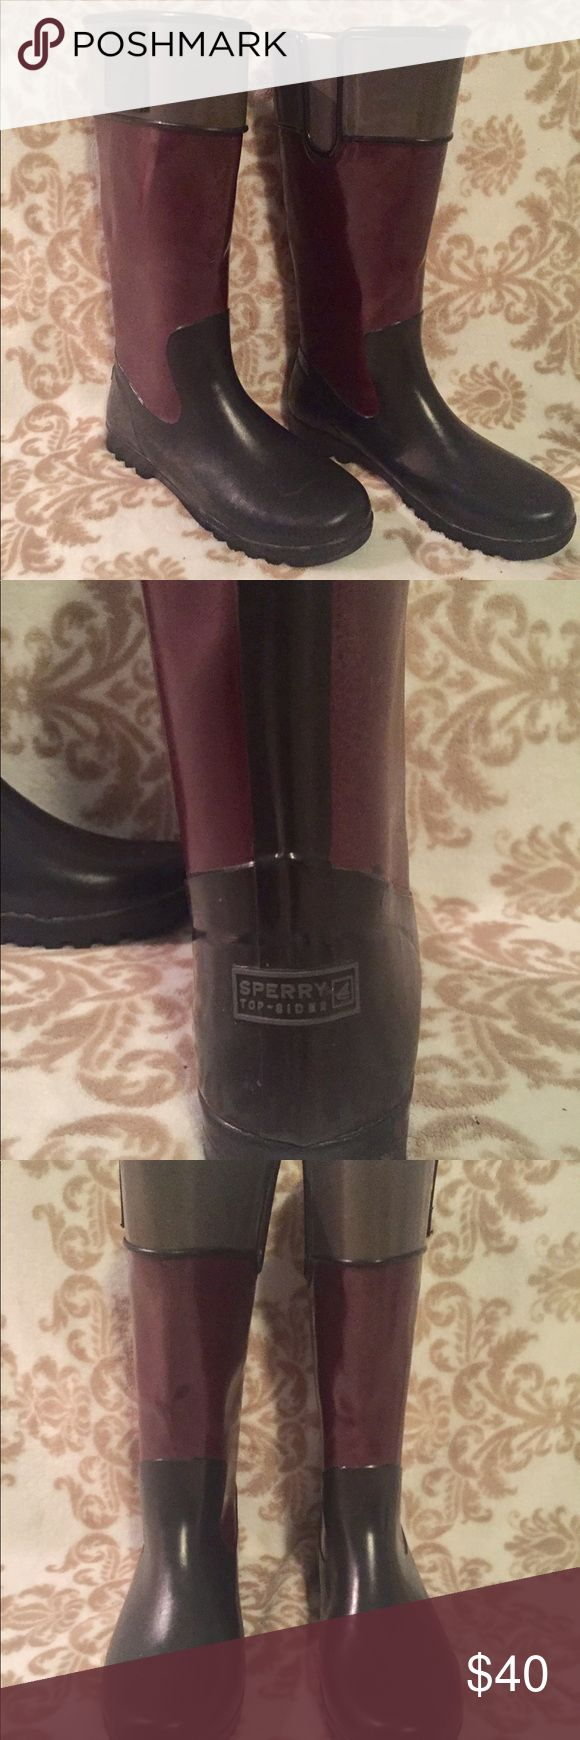 "Sperry Top Sider Rain Boots Sperry top sider rain boots! Approx. 13"" high. These have been worn (some wear on shaft of boot) but are overall in good condition! The soles are nearly perfect. No tears or holes. Interior is in great condition and super soft and comfy. Black, dark purple & gray. Kindly, no trades. Reasonable offers welcome. Let me know if you have any questions! Sperry Top-Sider Shoes Winter & Rain Boots"